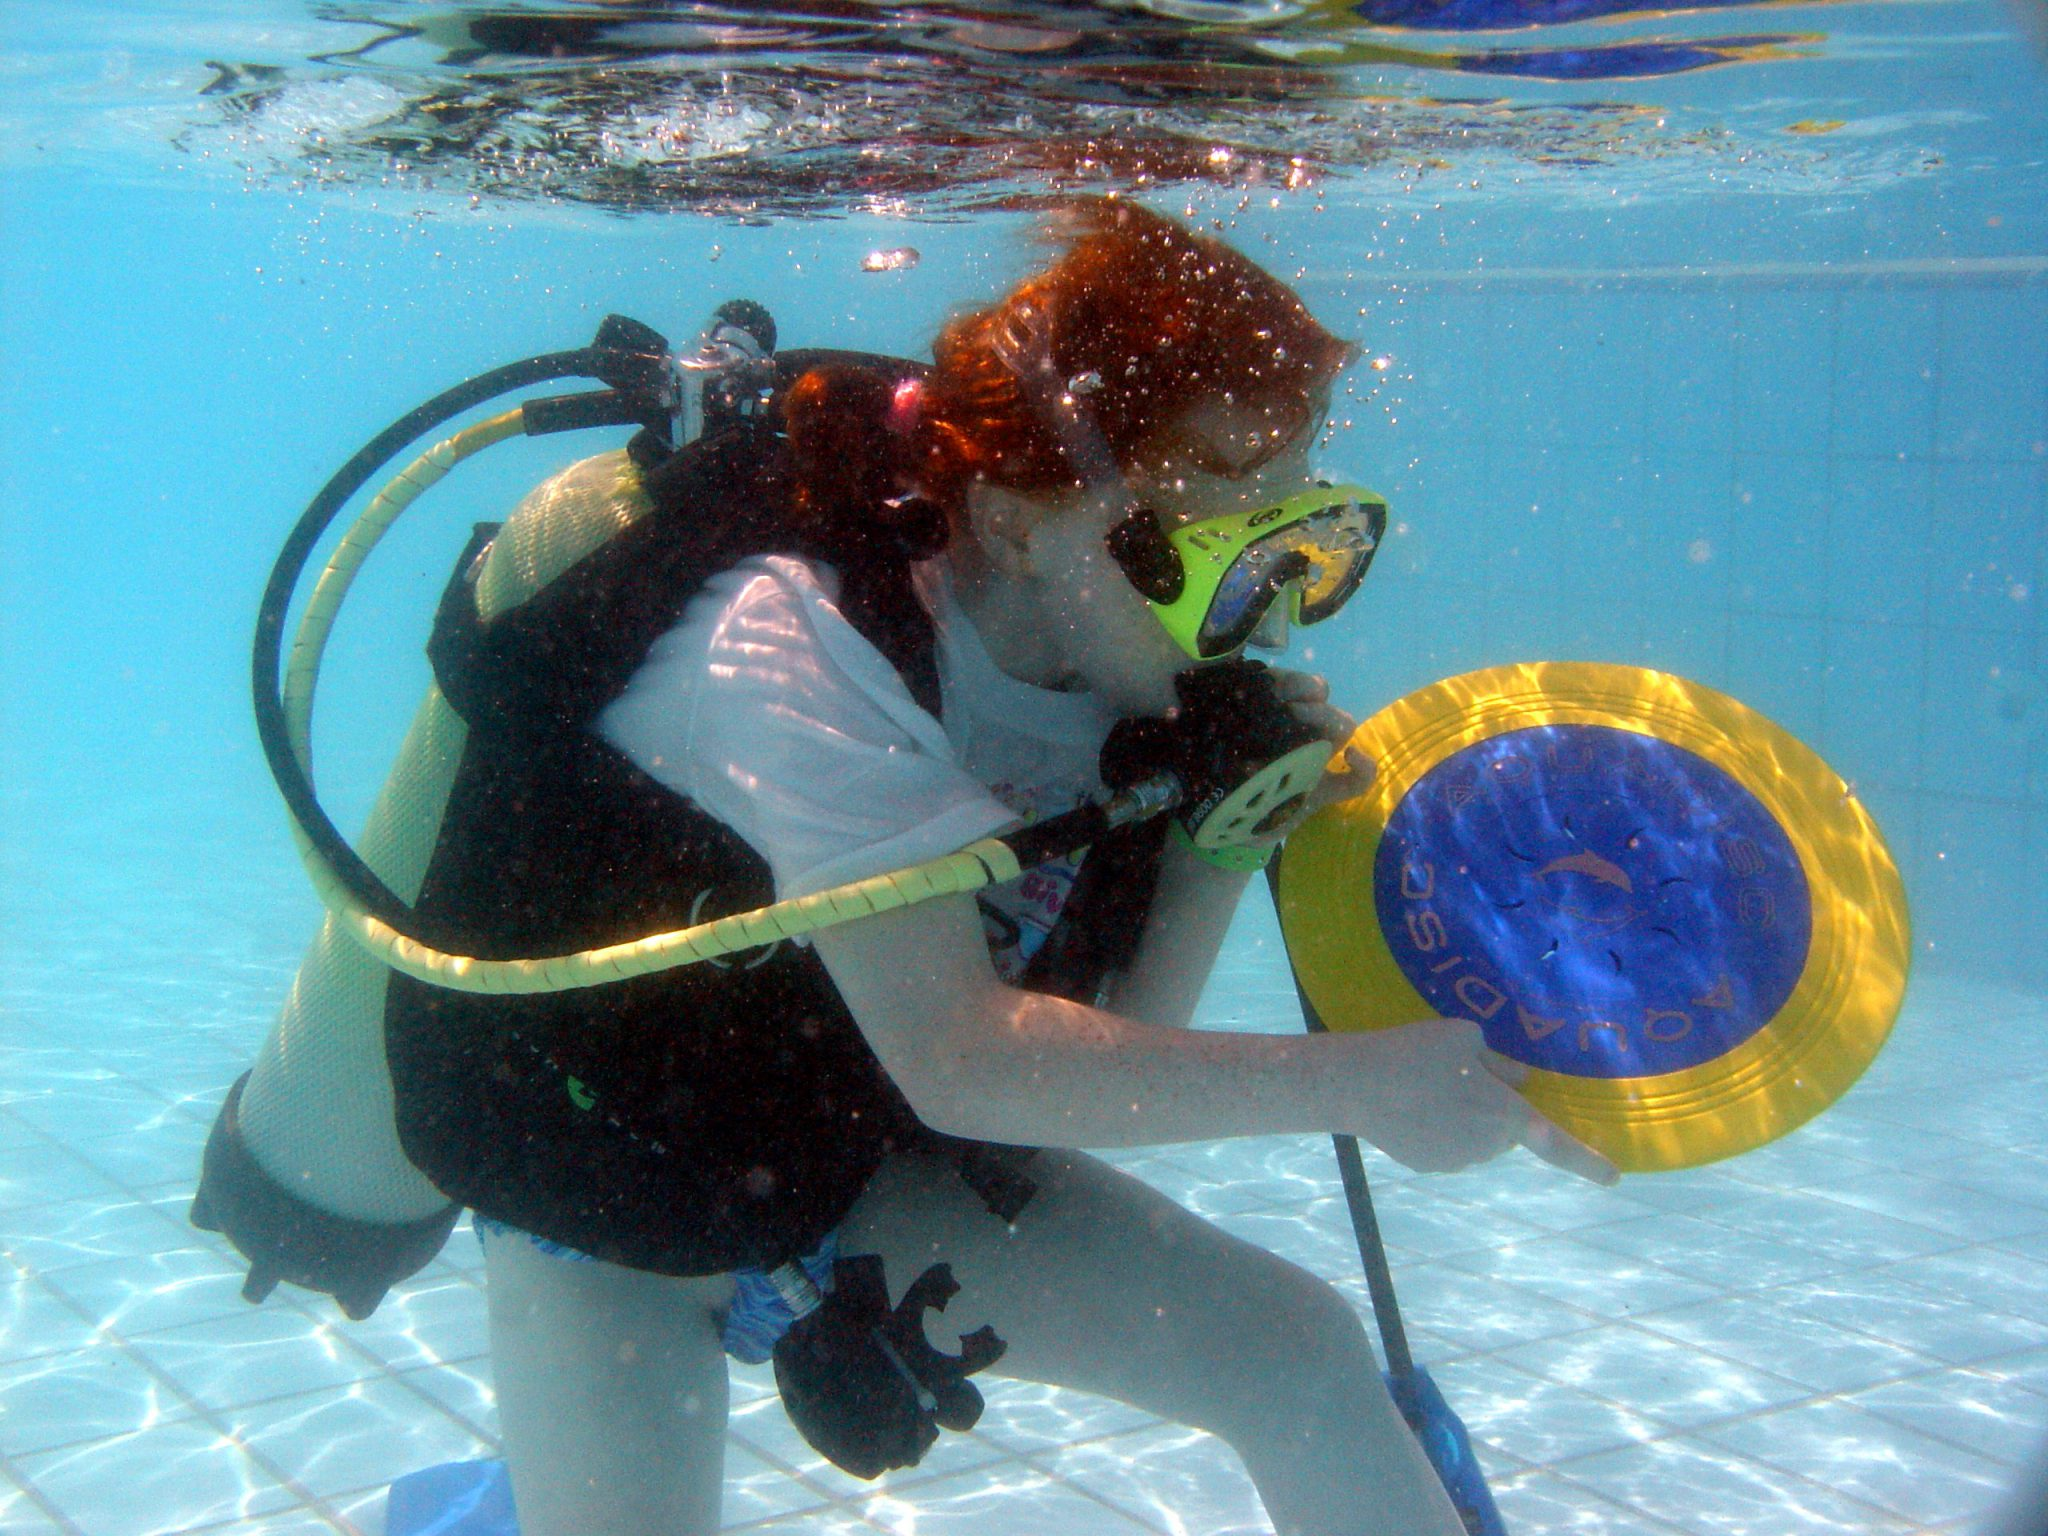 Introductory Diving, Bubblemaker, diving, kids, fun, frisbee, games